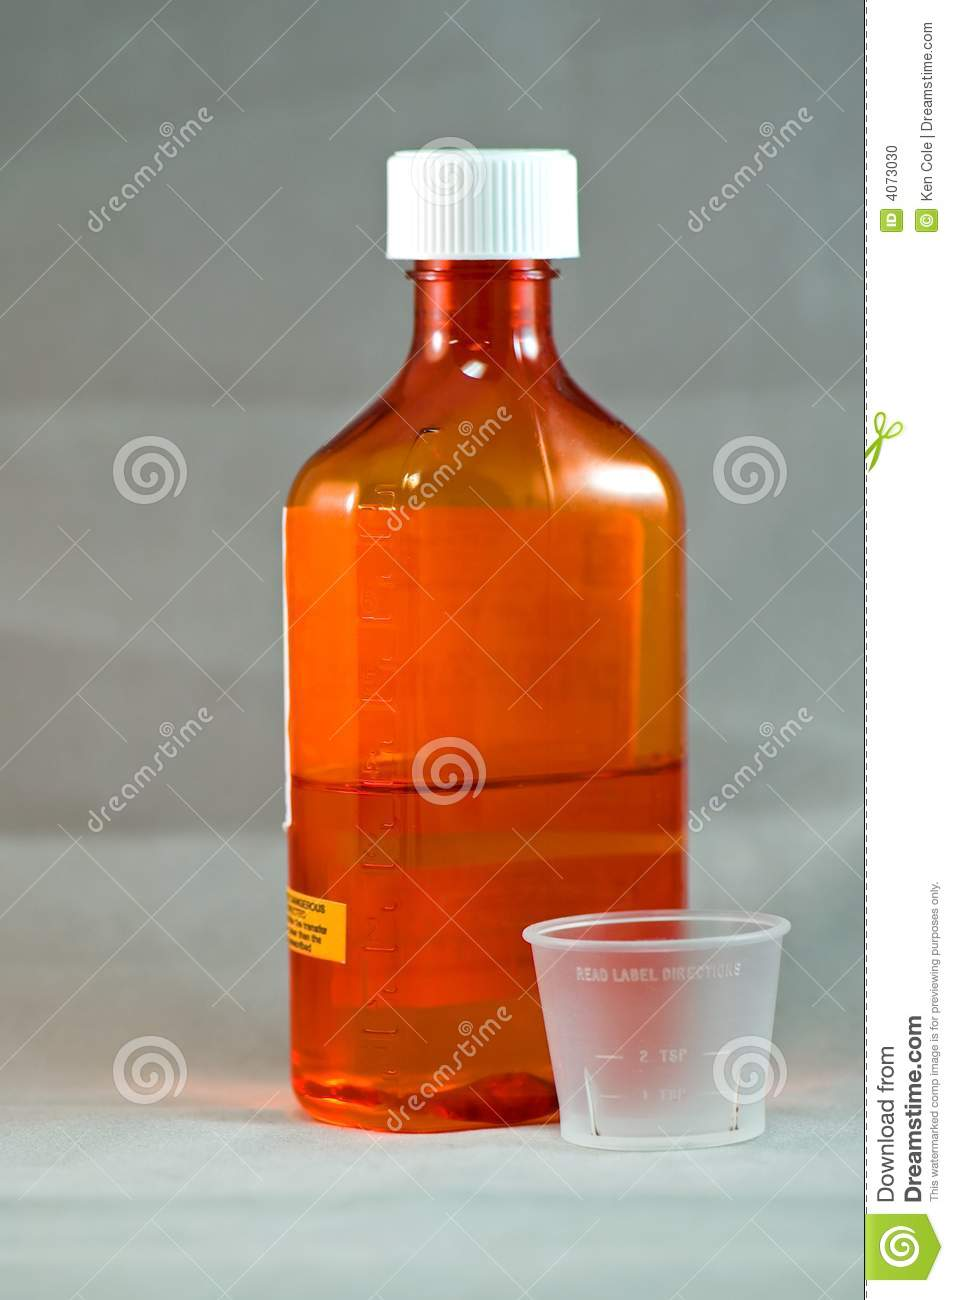 how to get prescription cough syrup with codeine